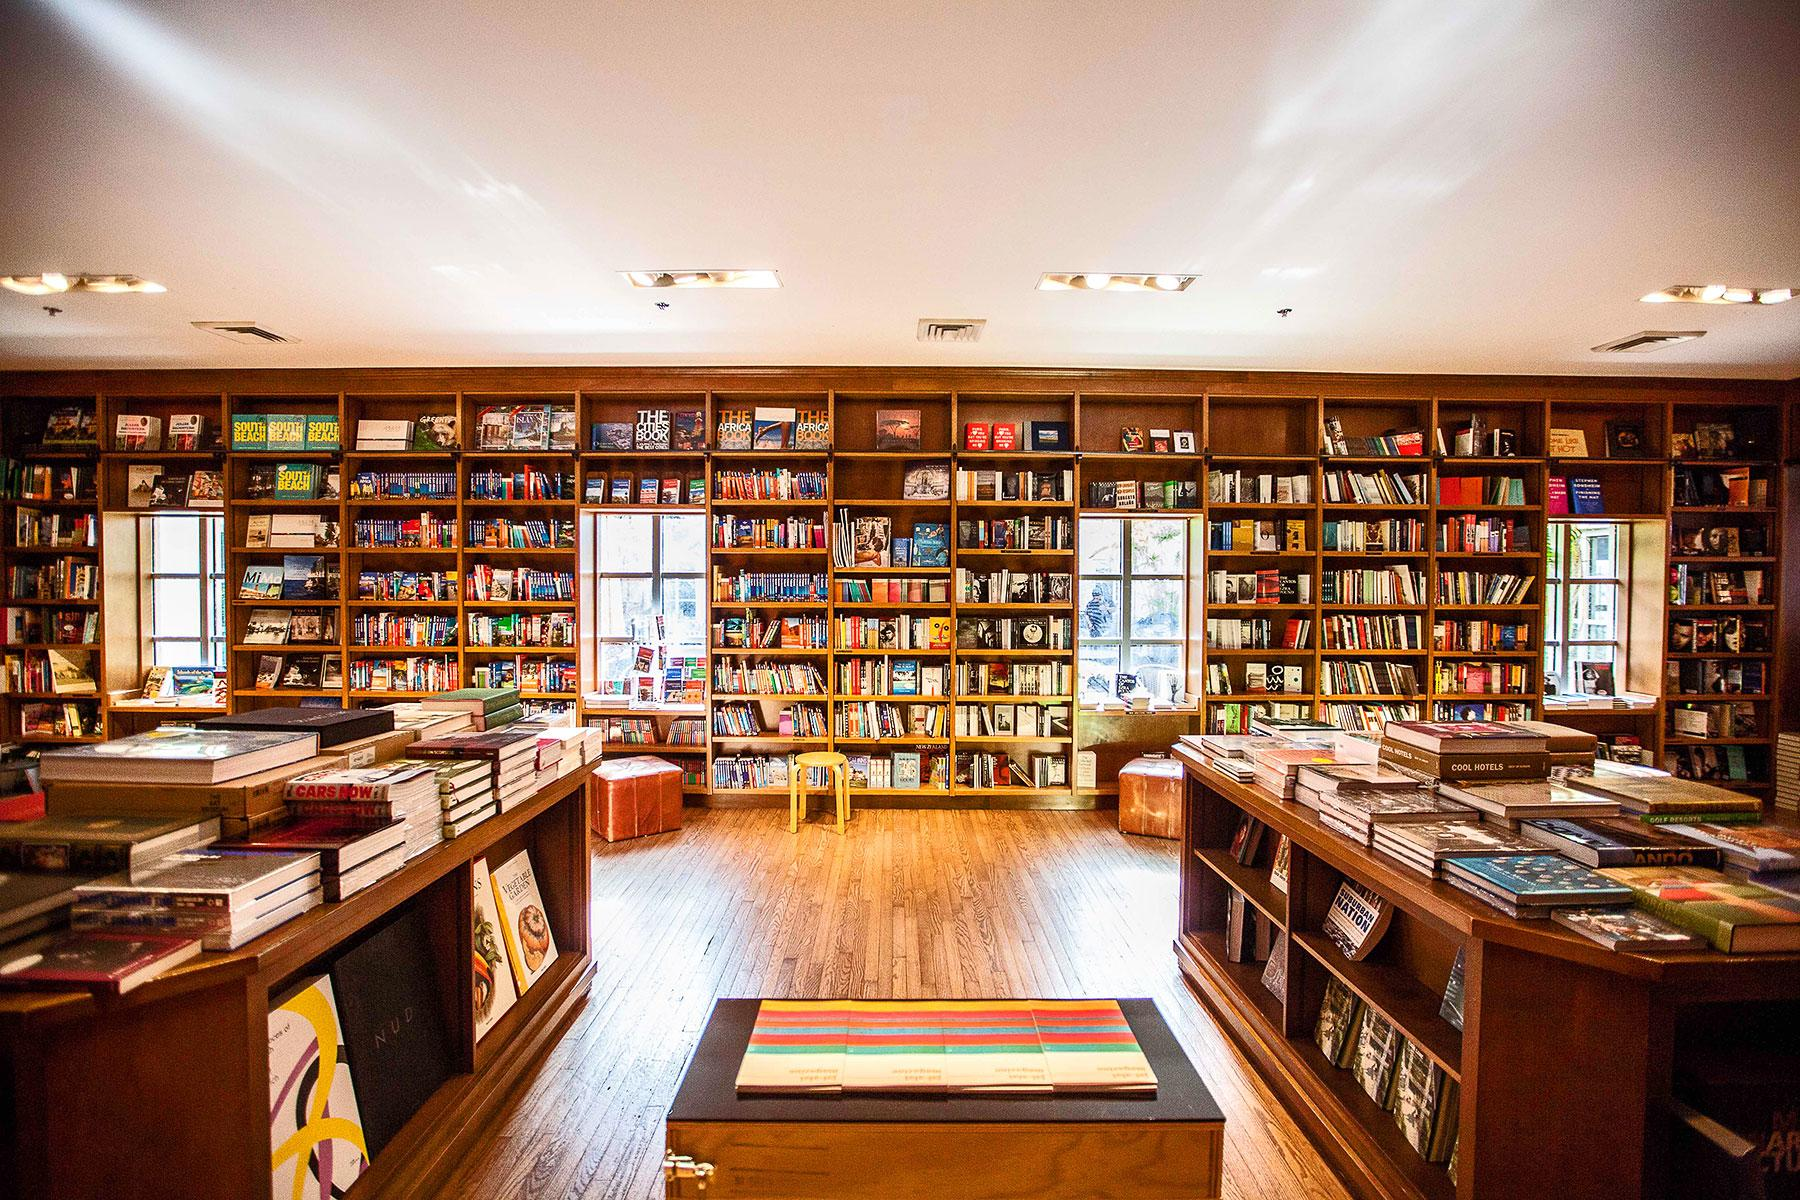 Bookstores With Cafes And Bars In Them